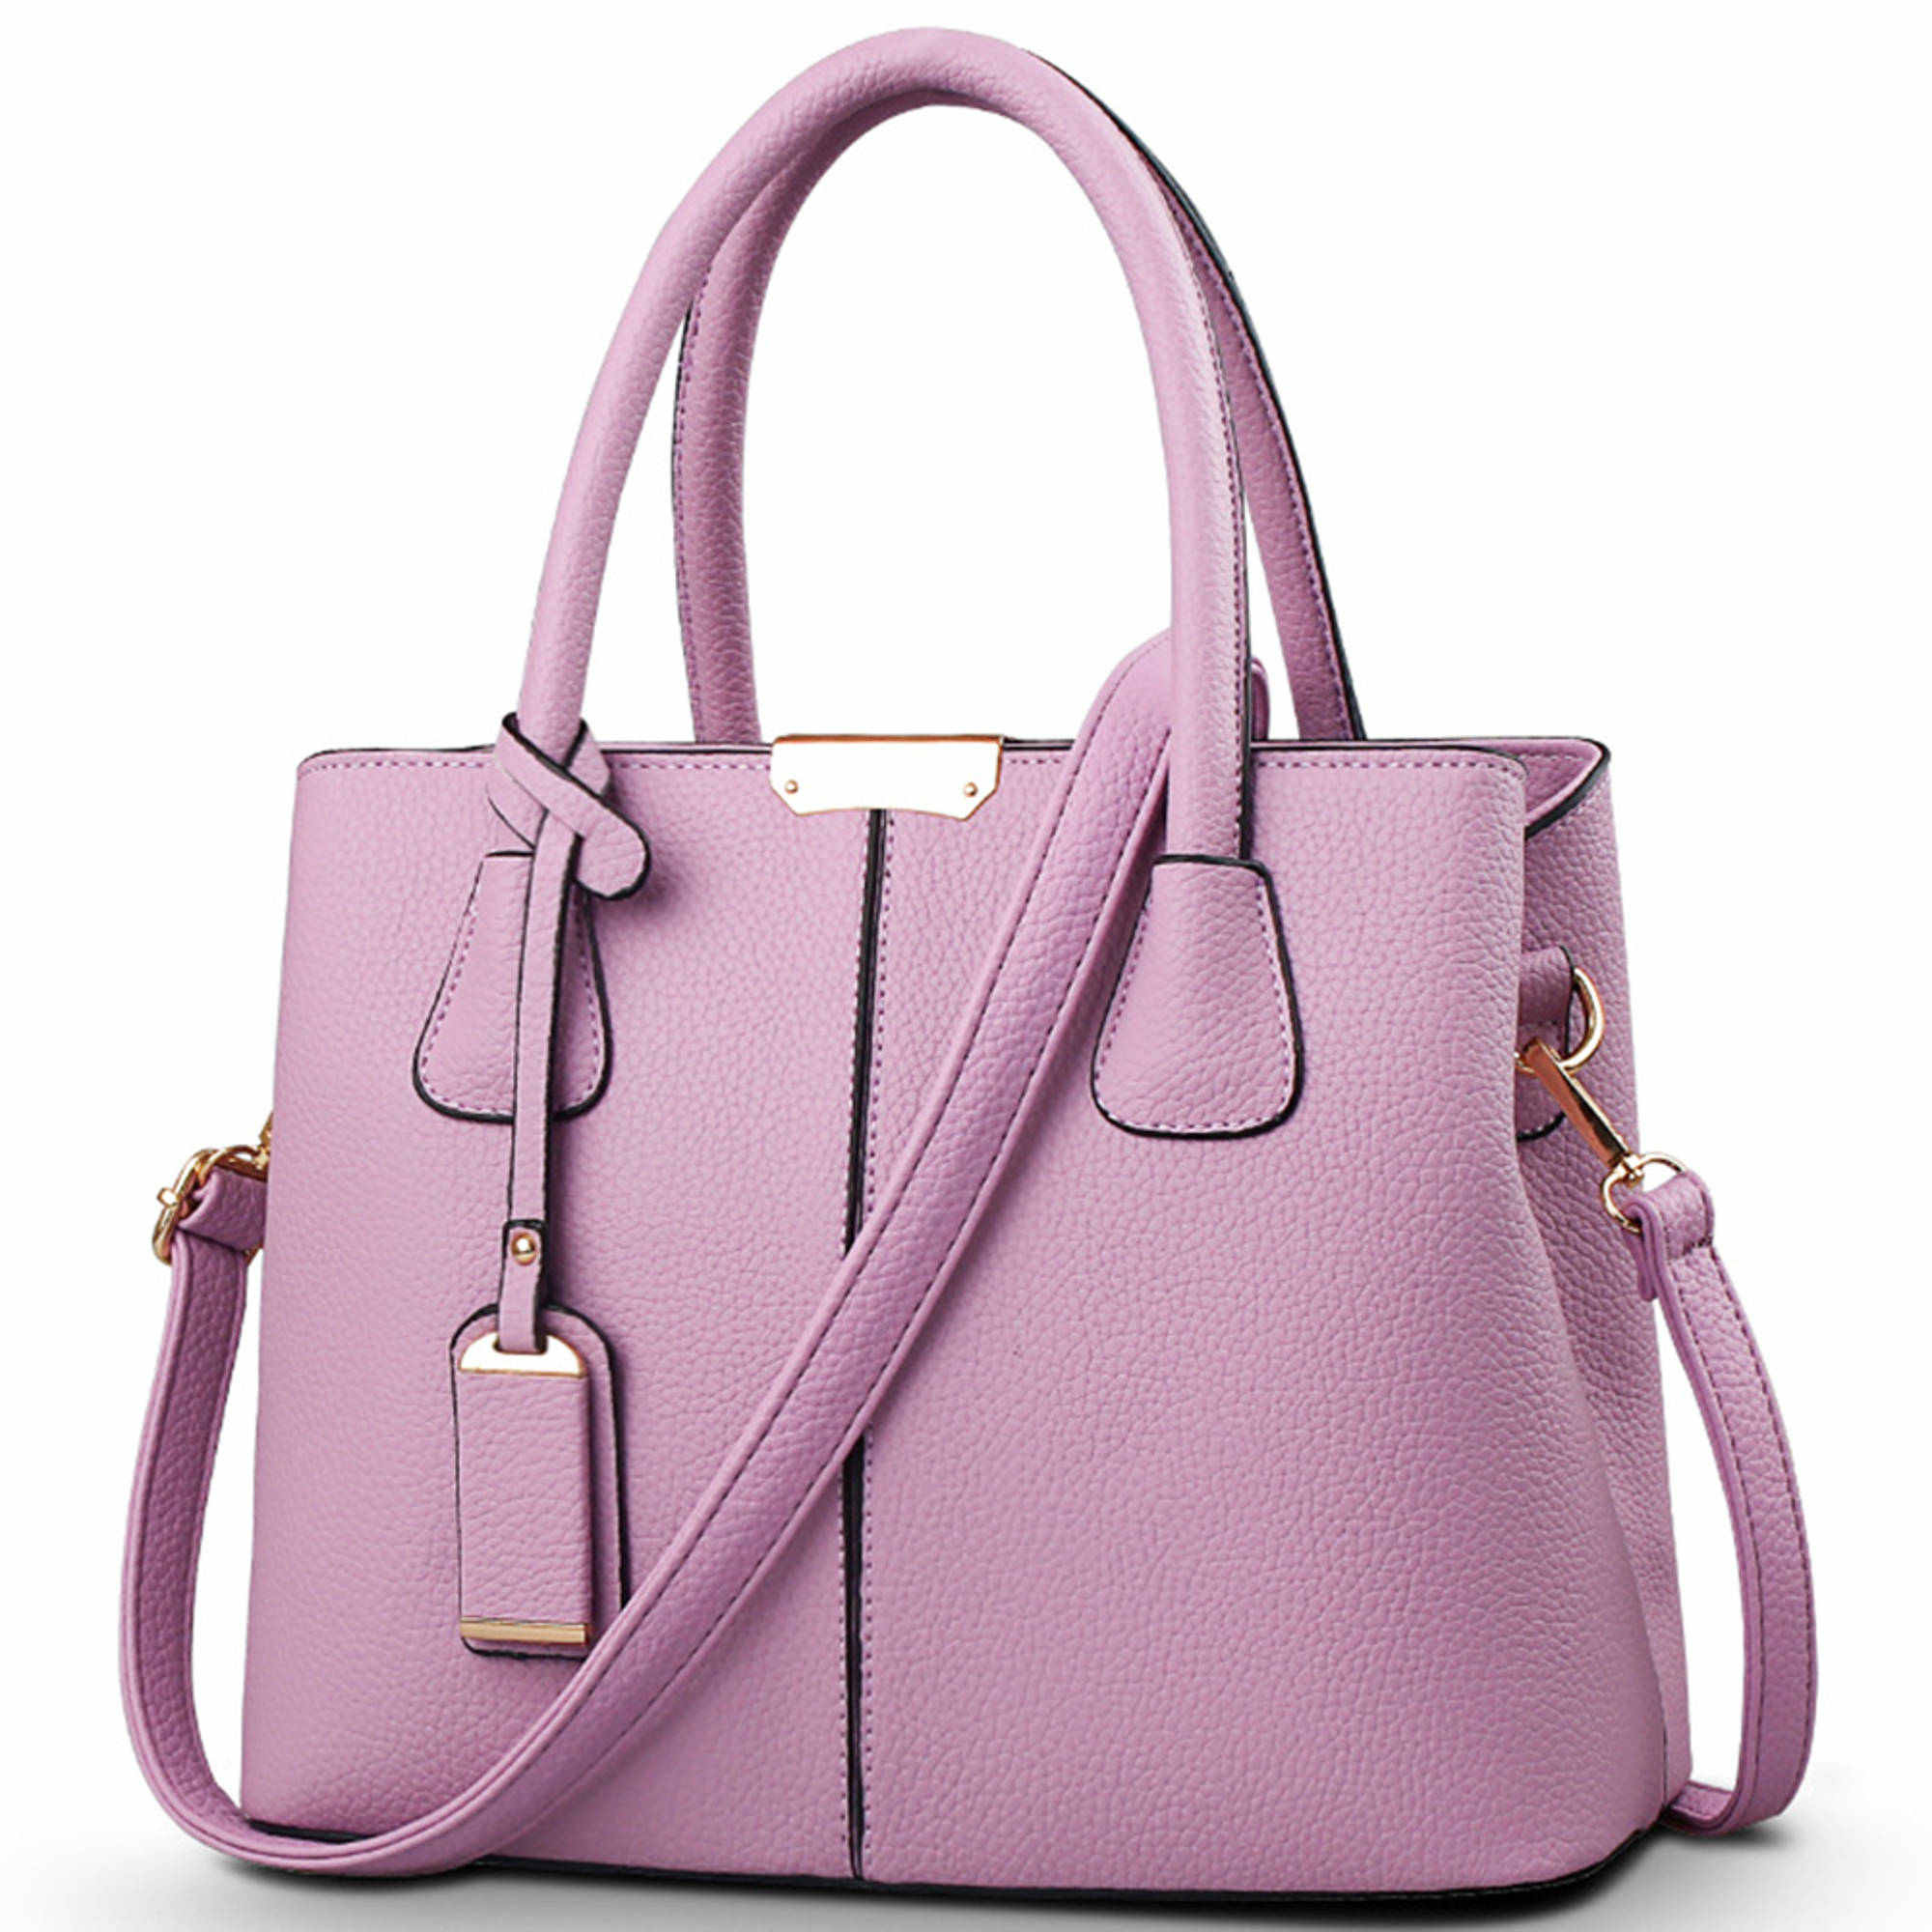 Women Leather Handbags Fashion Top Handle Bag Cross body Shoulder Bag for Ladies